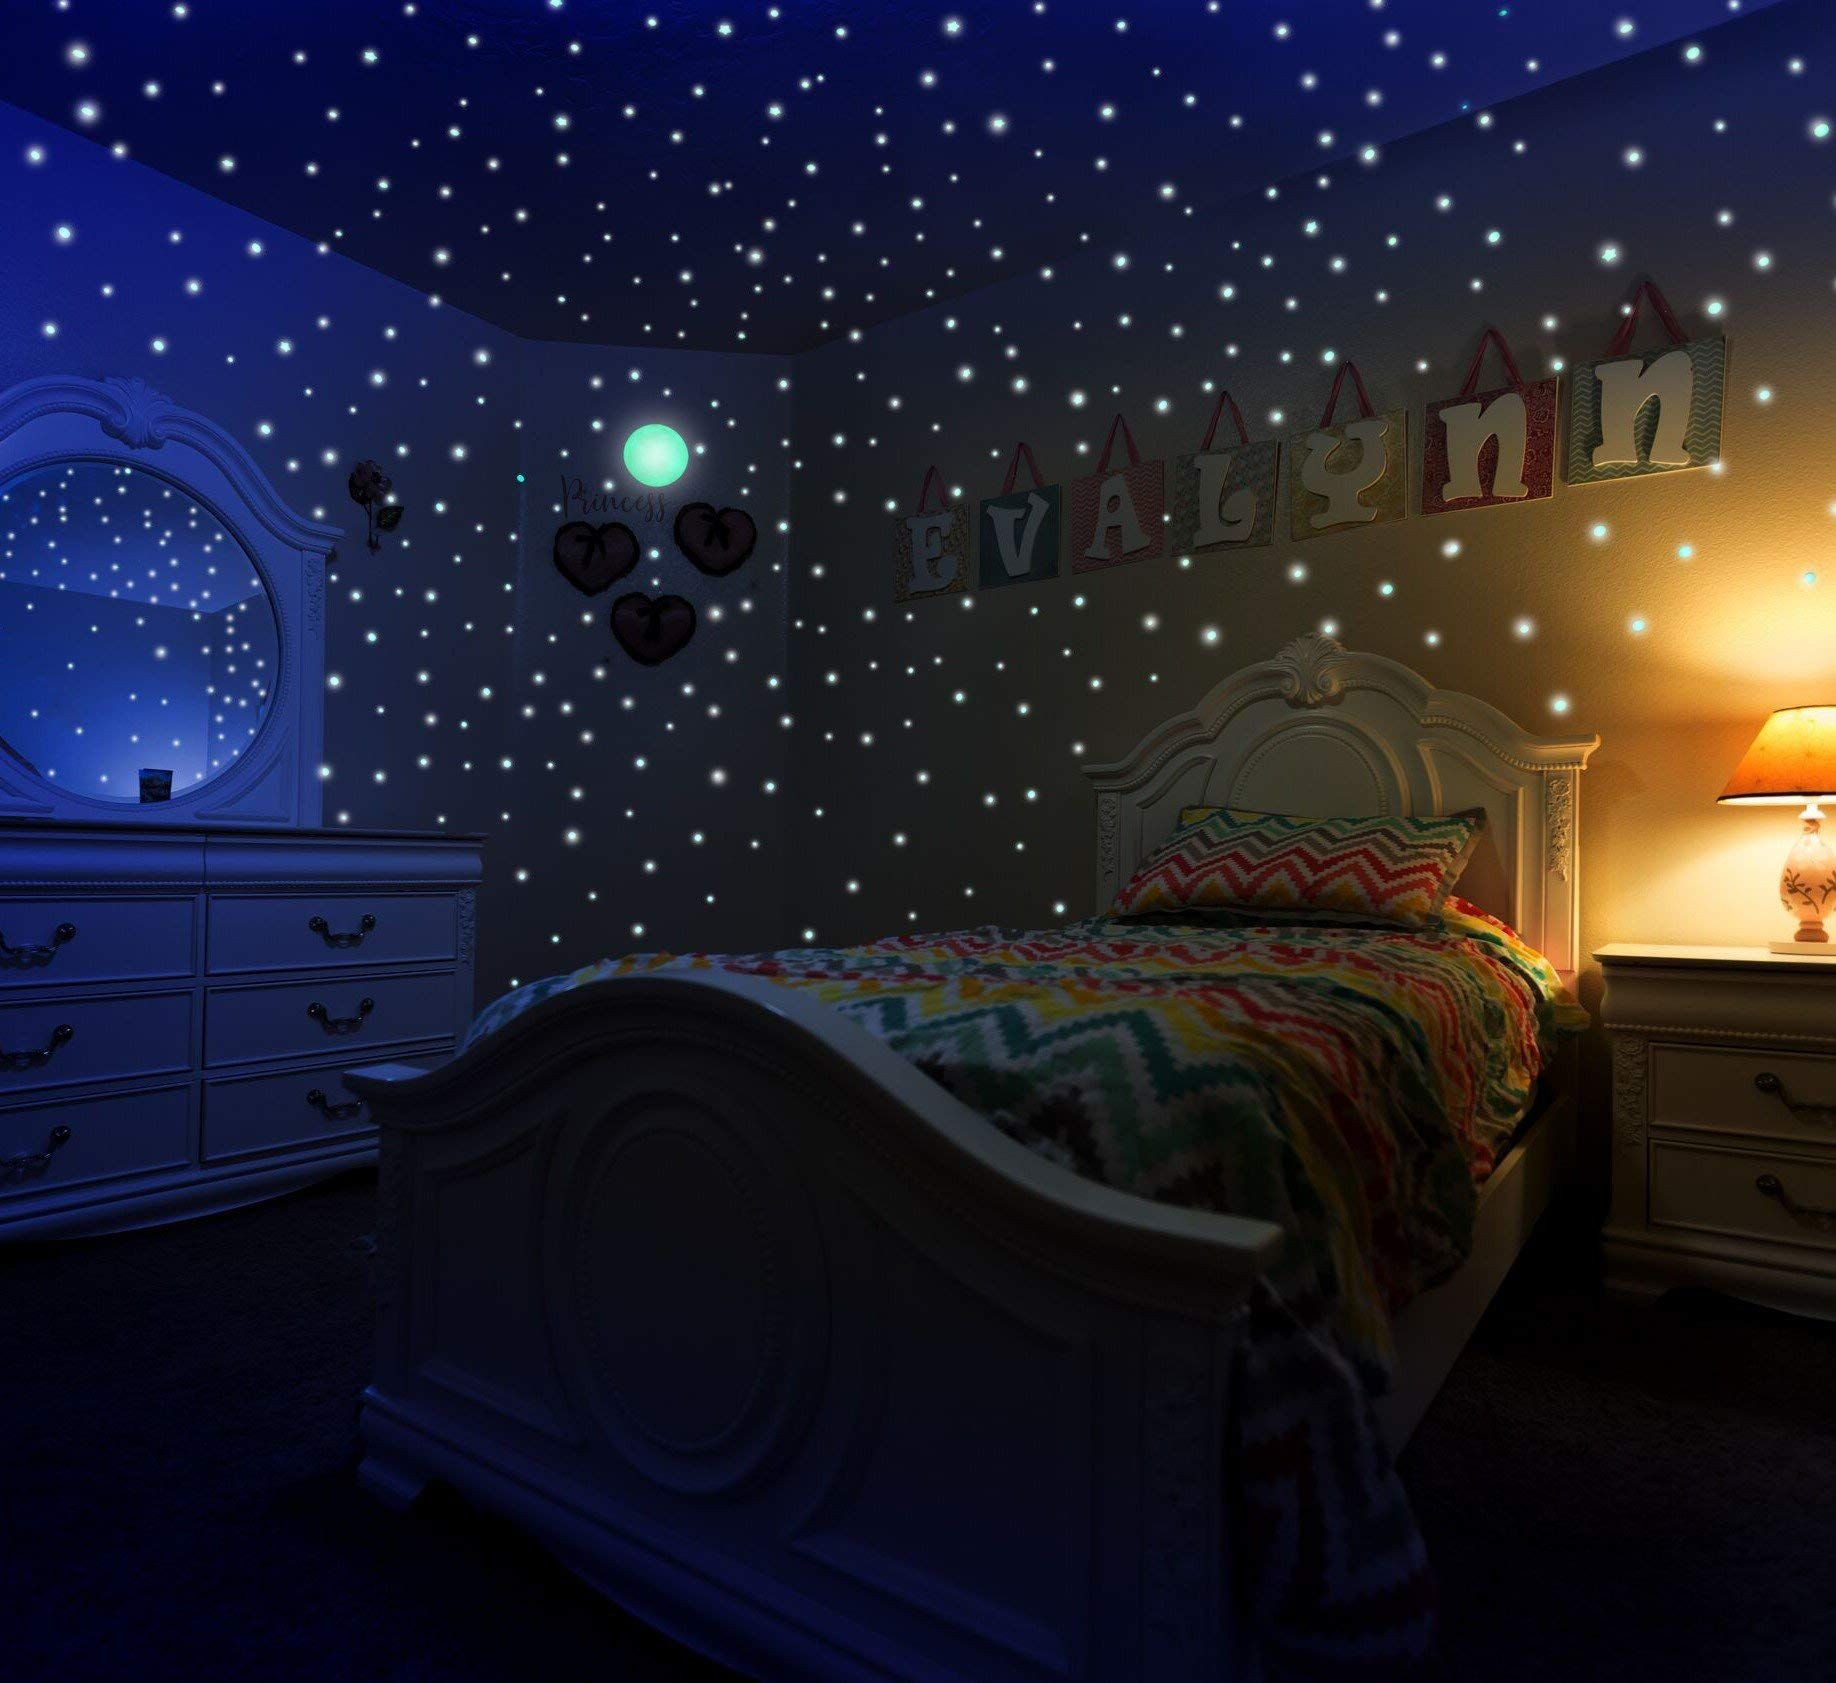 Glow In The Dark Stars And Moon Stickers For Kids Bedroom Walls And Ceiling Of Starry Night Sky 447 Adhesiv Kids Bedroom Walls Blush Bedroom Decor Bedroom Wall